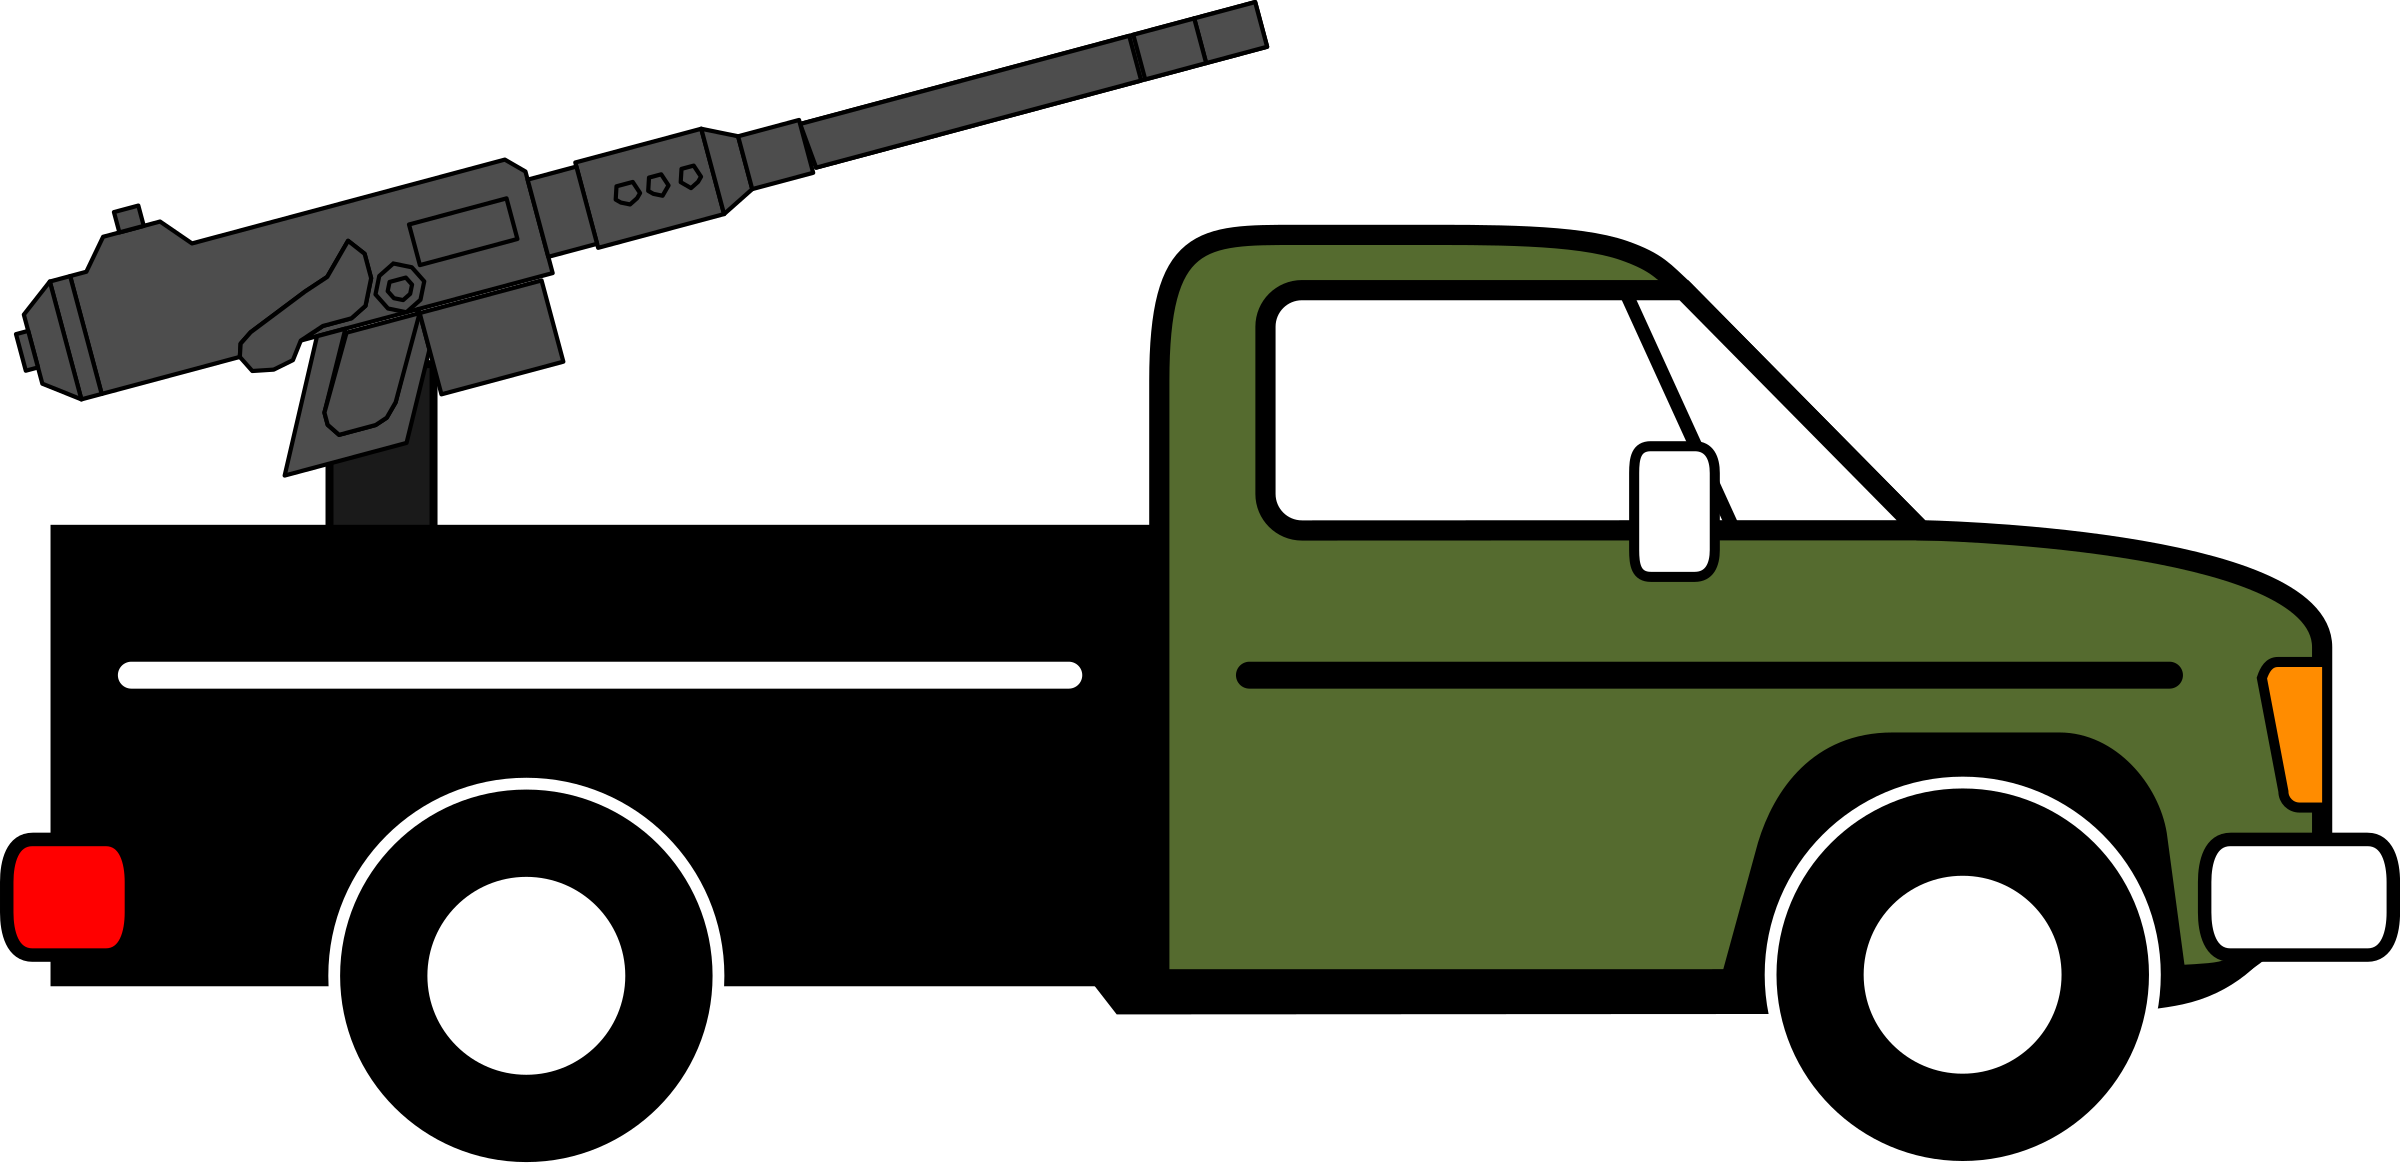 Truck png clipart. Technical modified from pickup